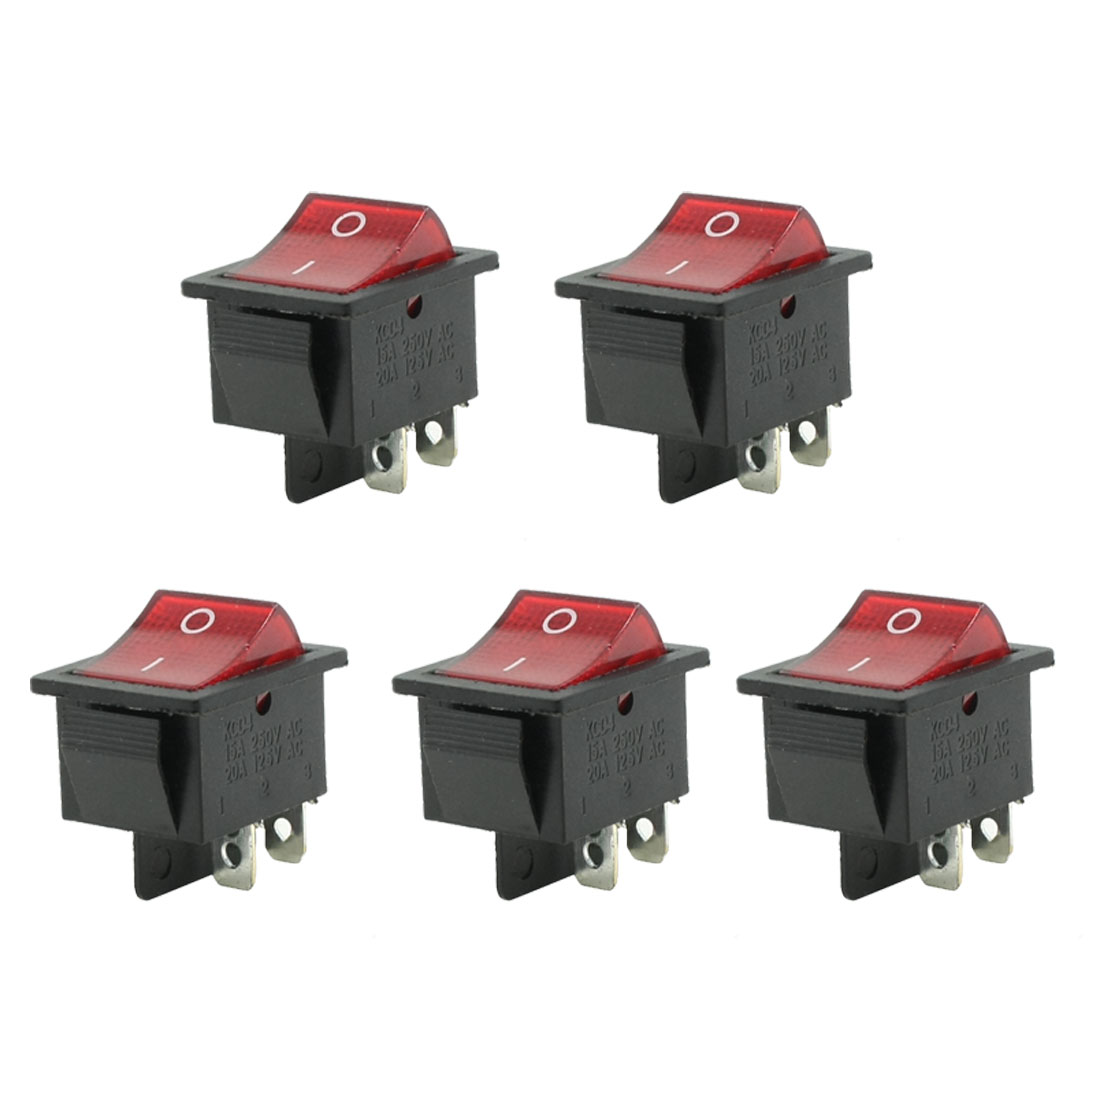 AC 15A 250V 20A 125V 4 Pin DPST ON-OFF Snap In Rocker Boat Switch 5PCS